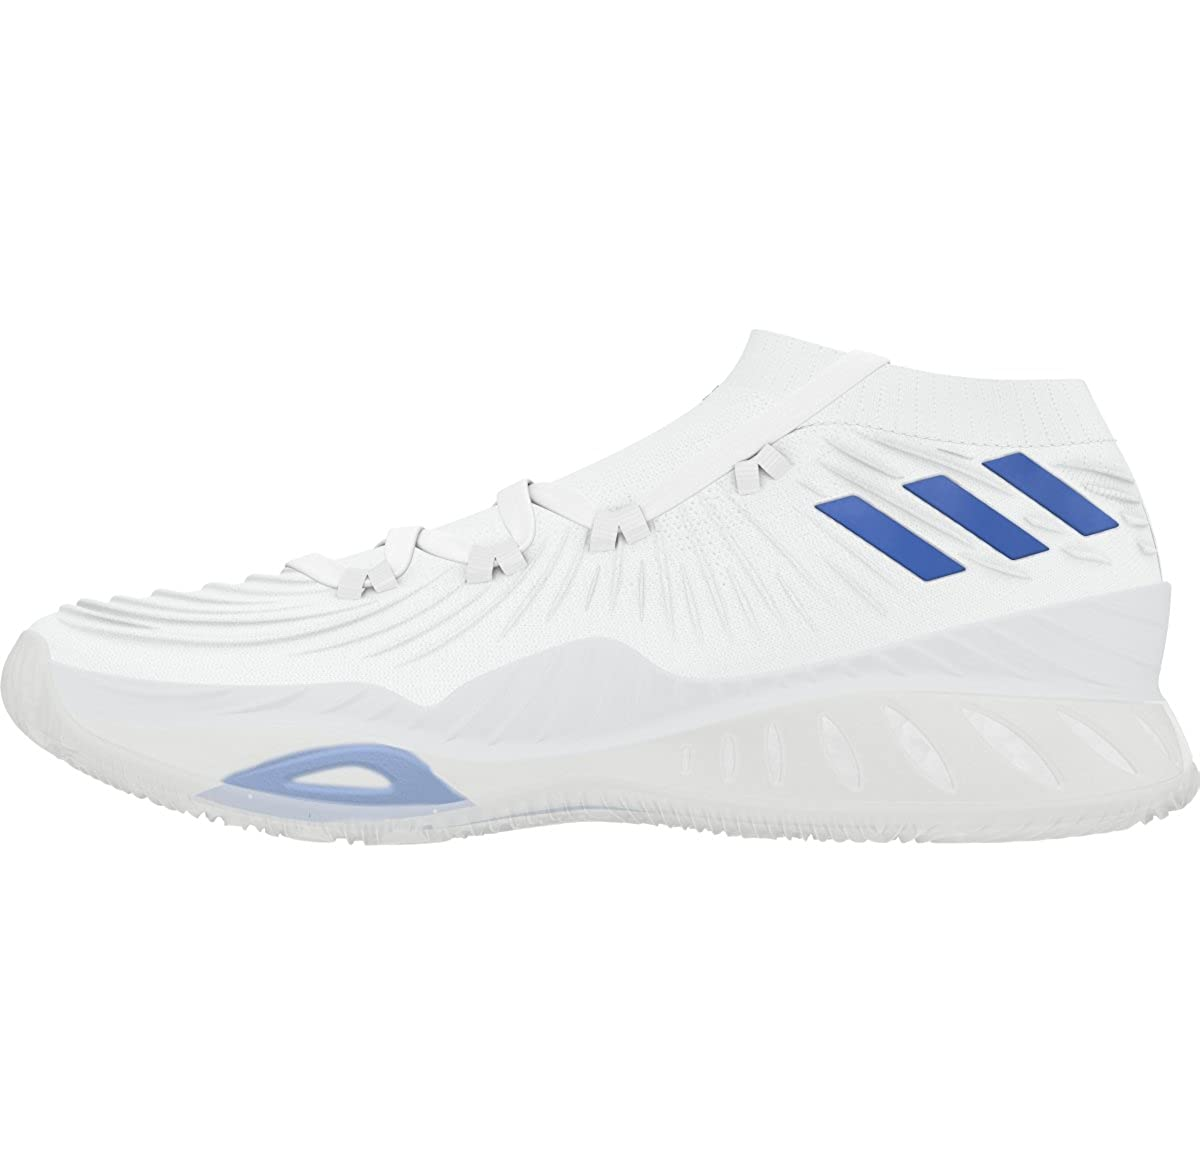 adidas Crazy Explosive Low NBA NCAA Shoe – Men s Basketball